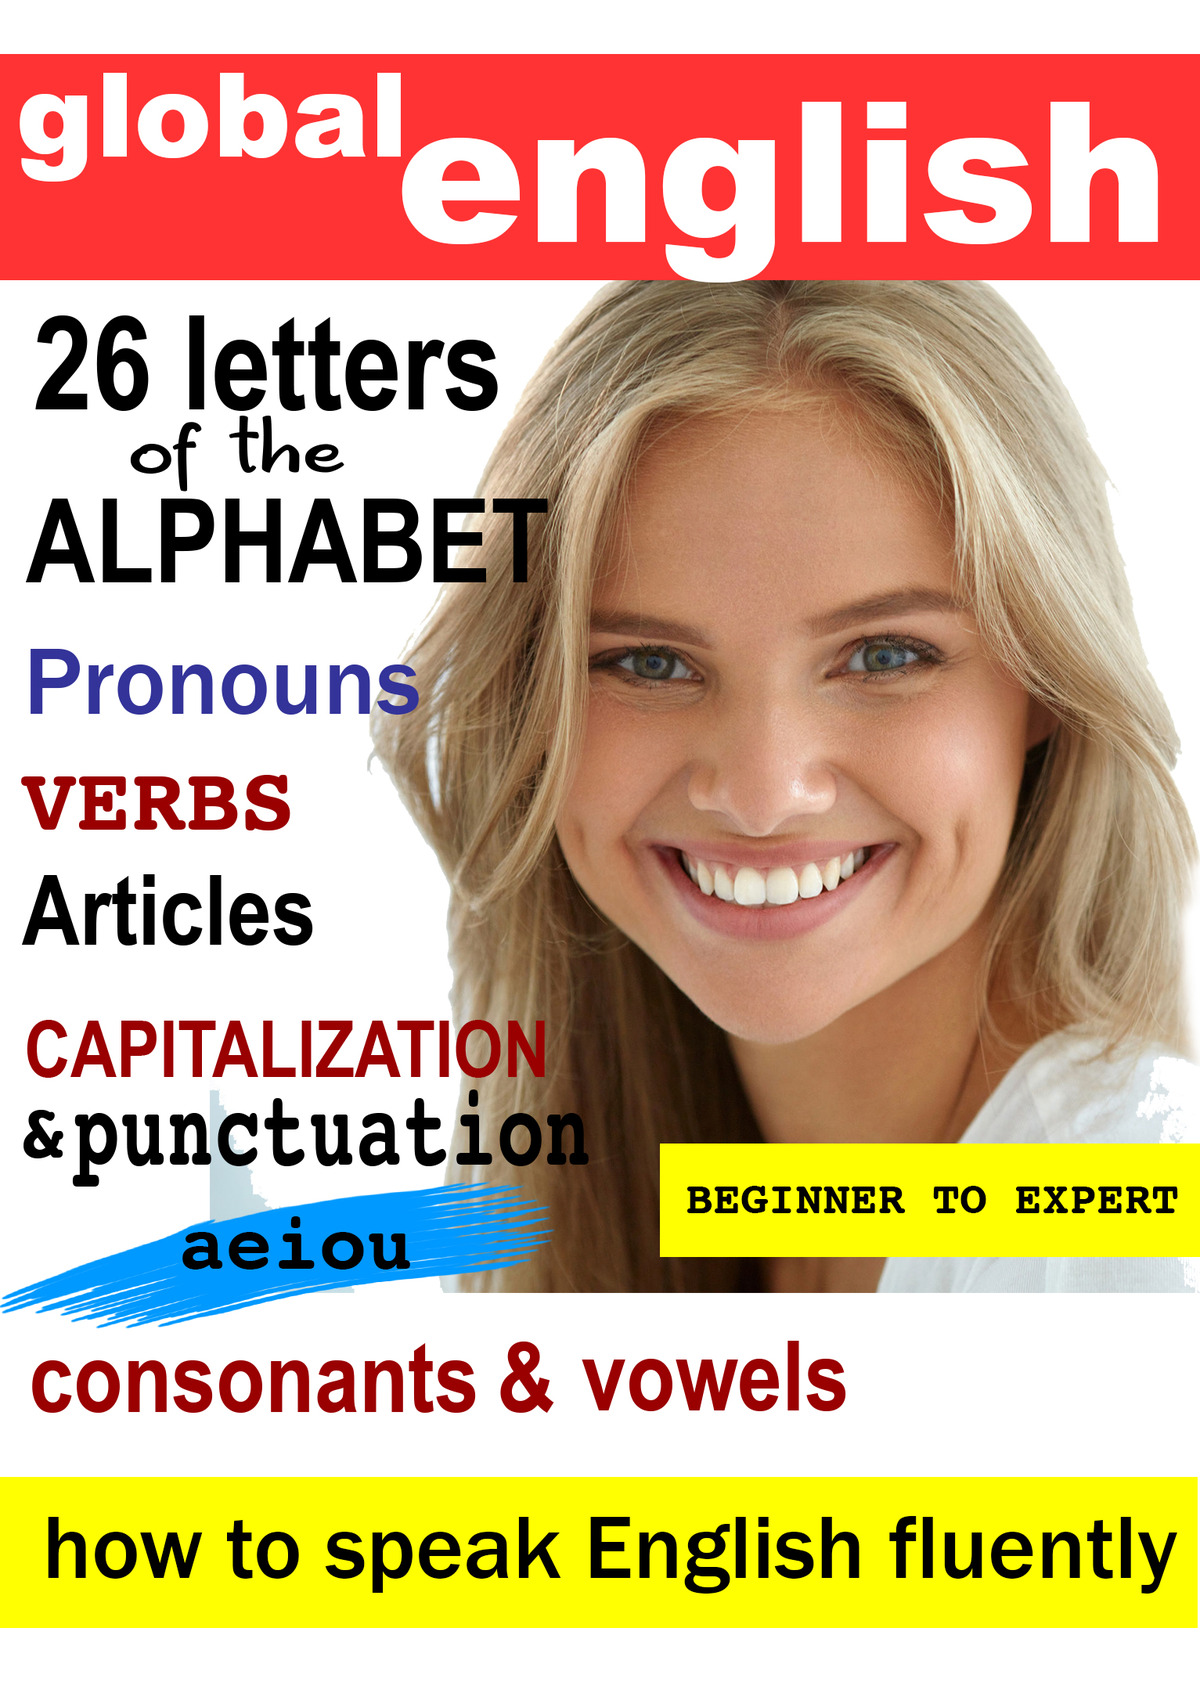 K7001 - The Alphabet, Consonants & Vowels, Capitalization & Punctuation, Personal Pronouns, The Verb 'to be', Articles